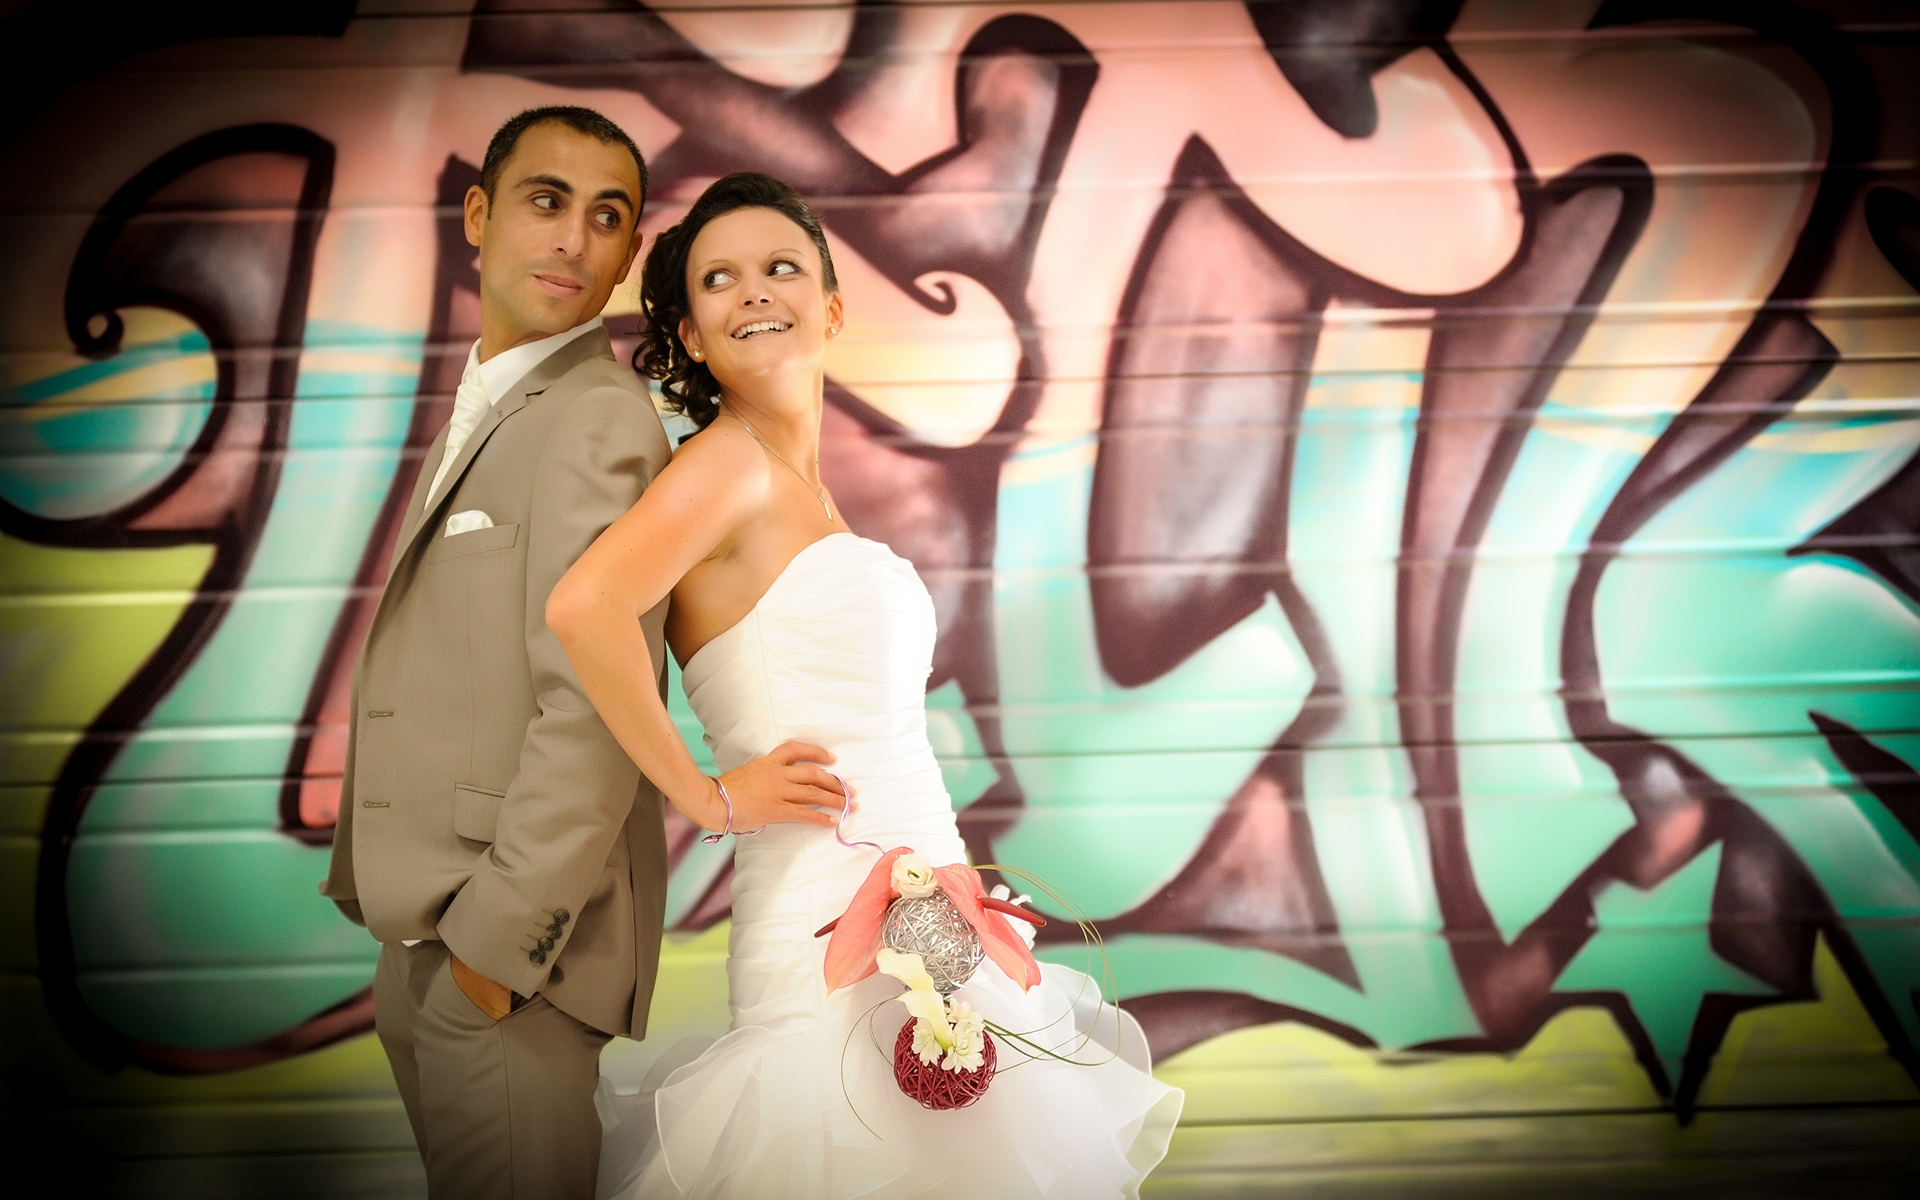 PHOTOGRAPHE MARIAGE AIN 01 - PHOTYS 019 (Sides 37-38)